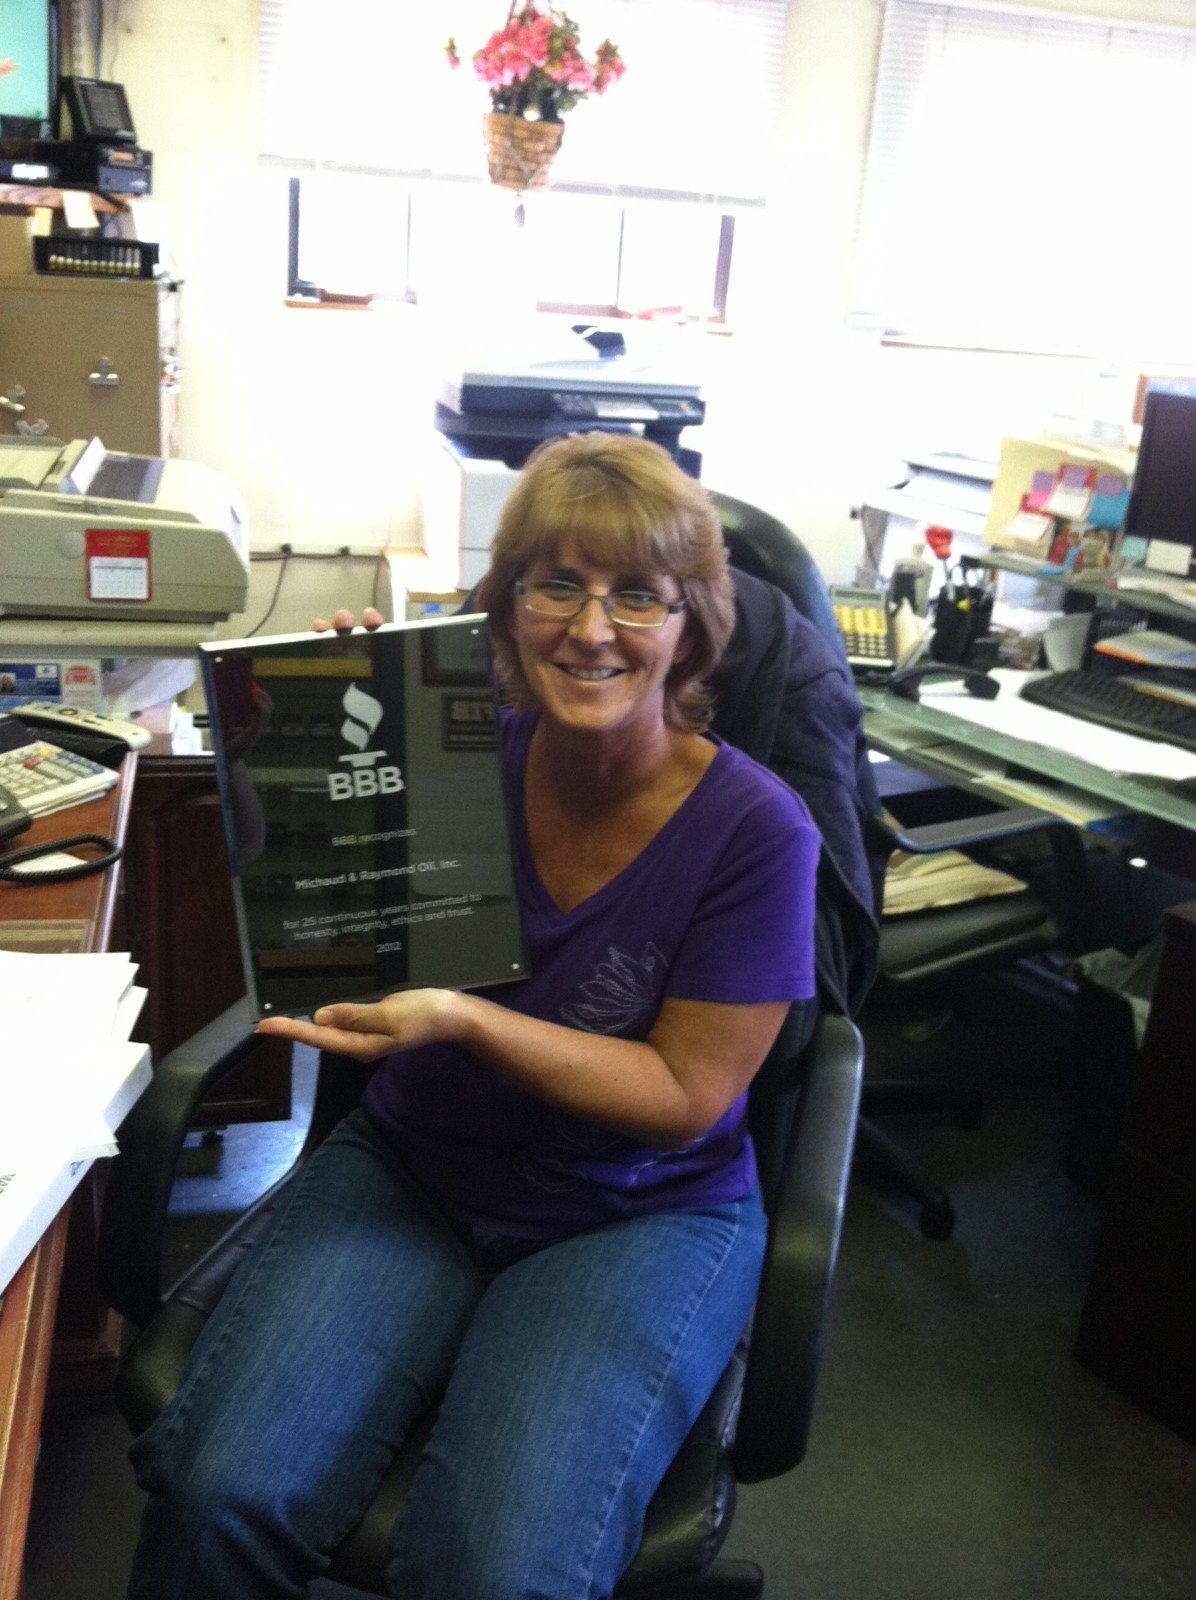 Office Manager Linda R., proudly diplaying a placque celebrating 25 years as an Accredited Business